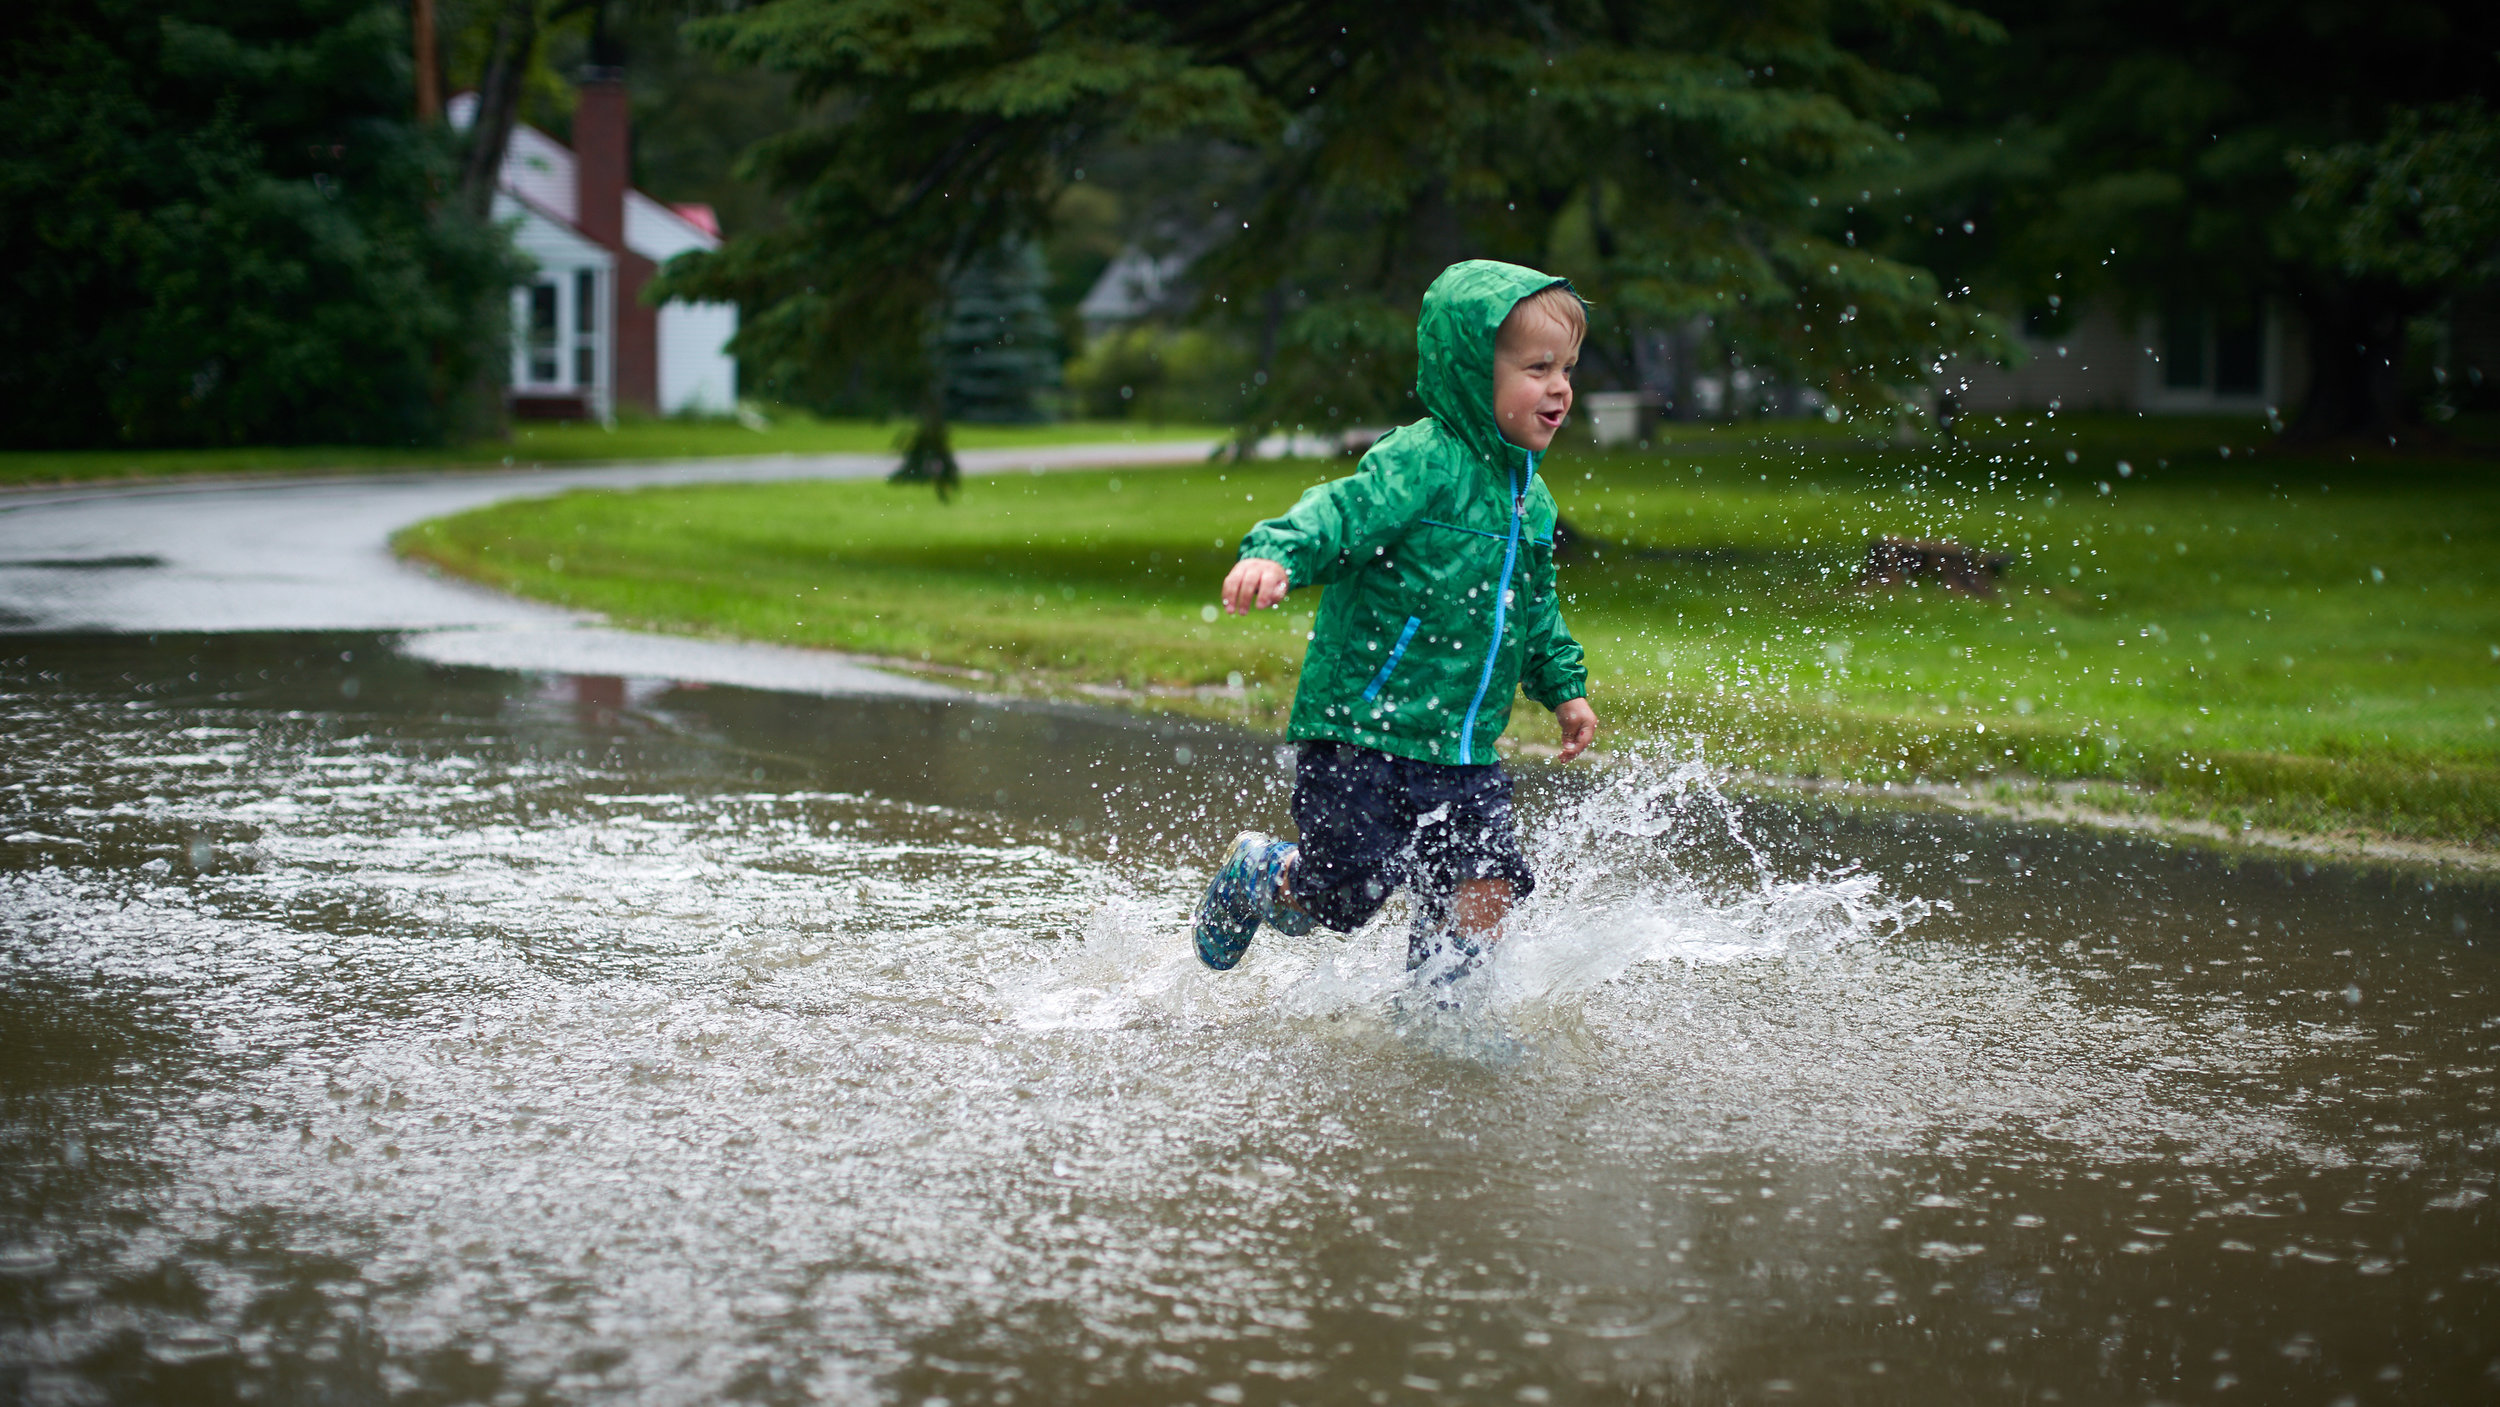 Grammy's House has all the best puddles.